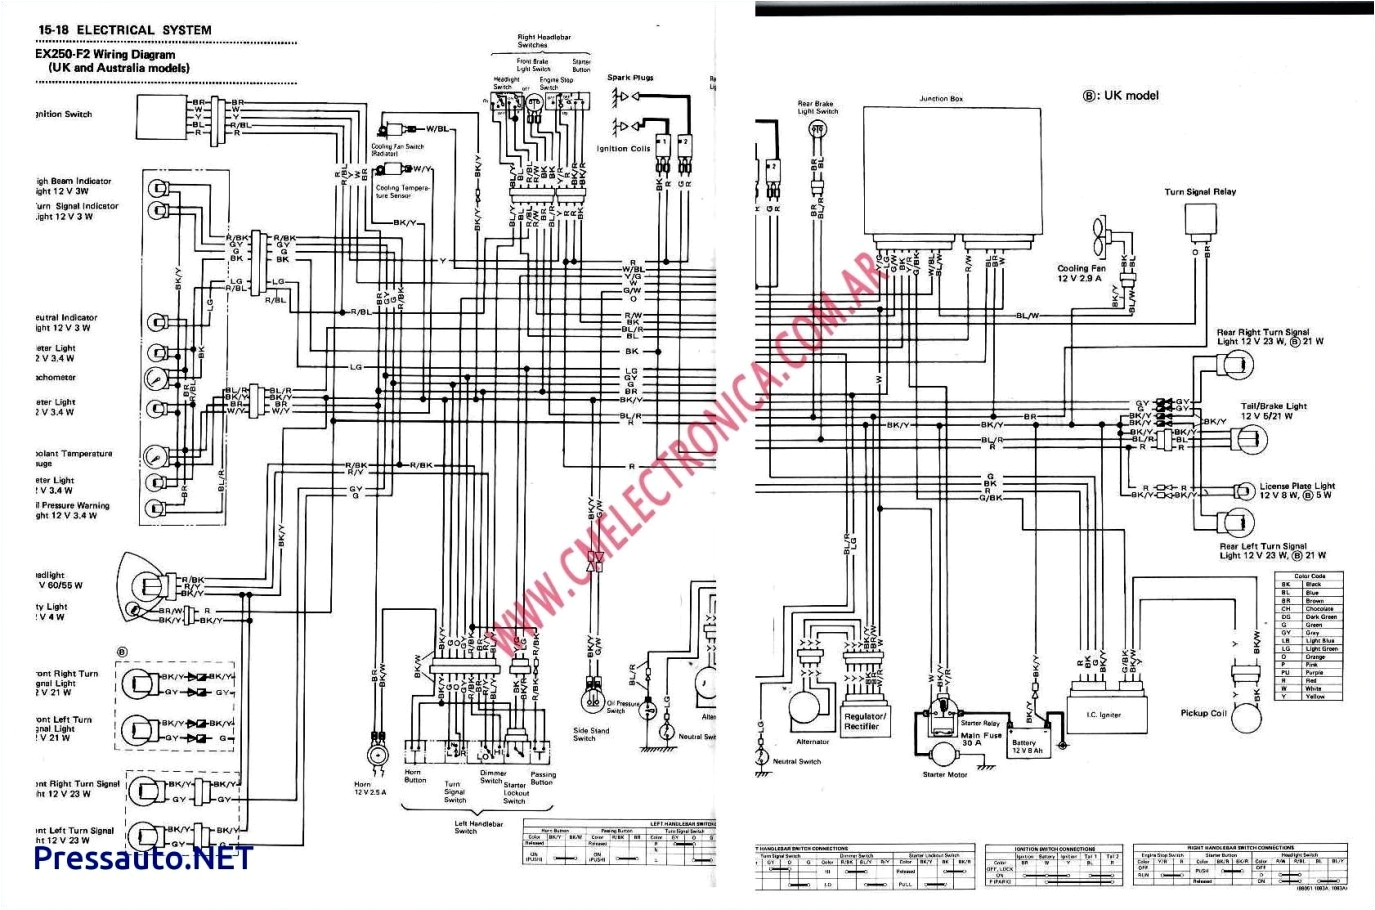 ex250 wiring diagram wiring diagram user ex250 wiring diagram